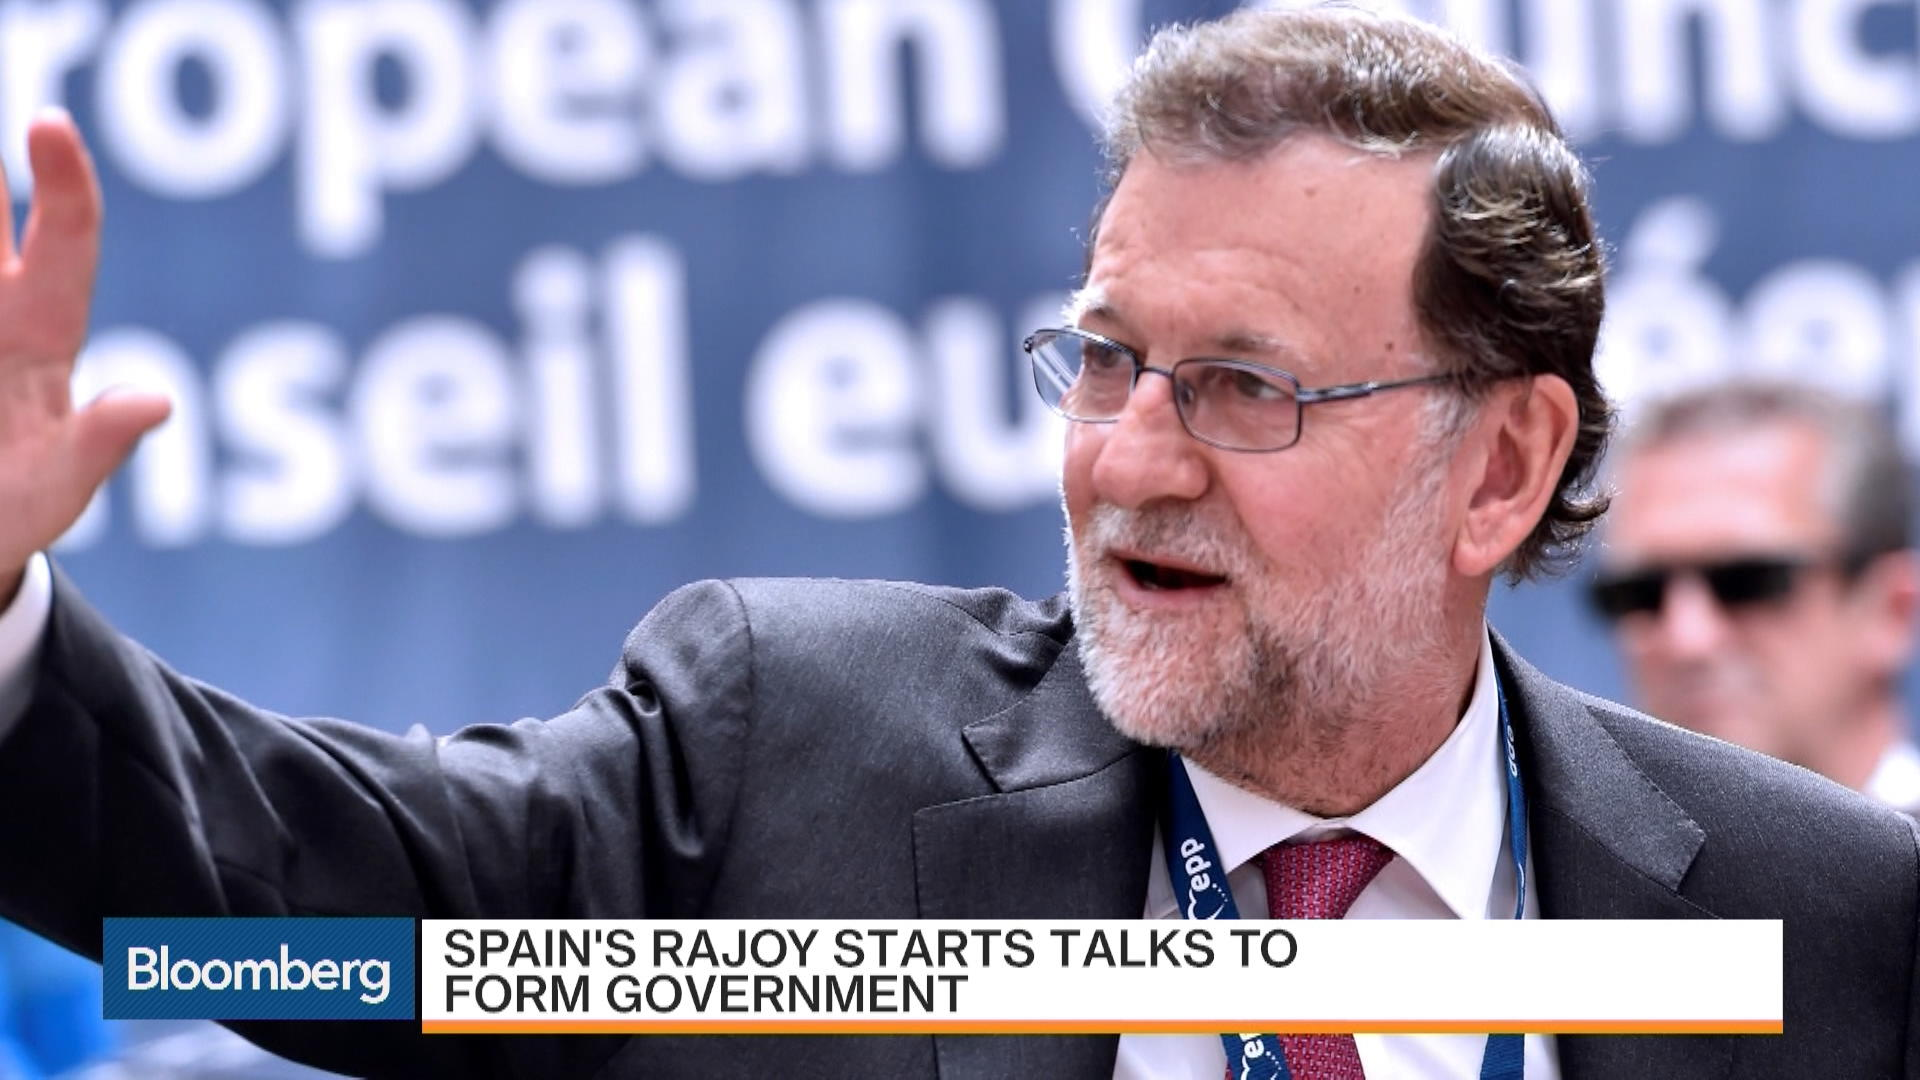 Can Spain Successfully Form a New Government? – Bloomberg